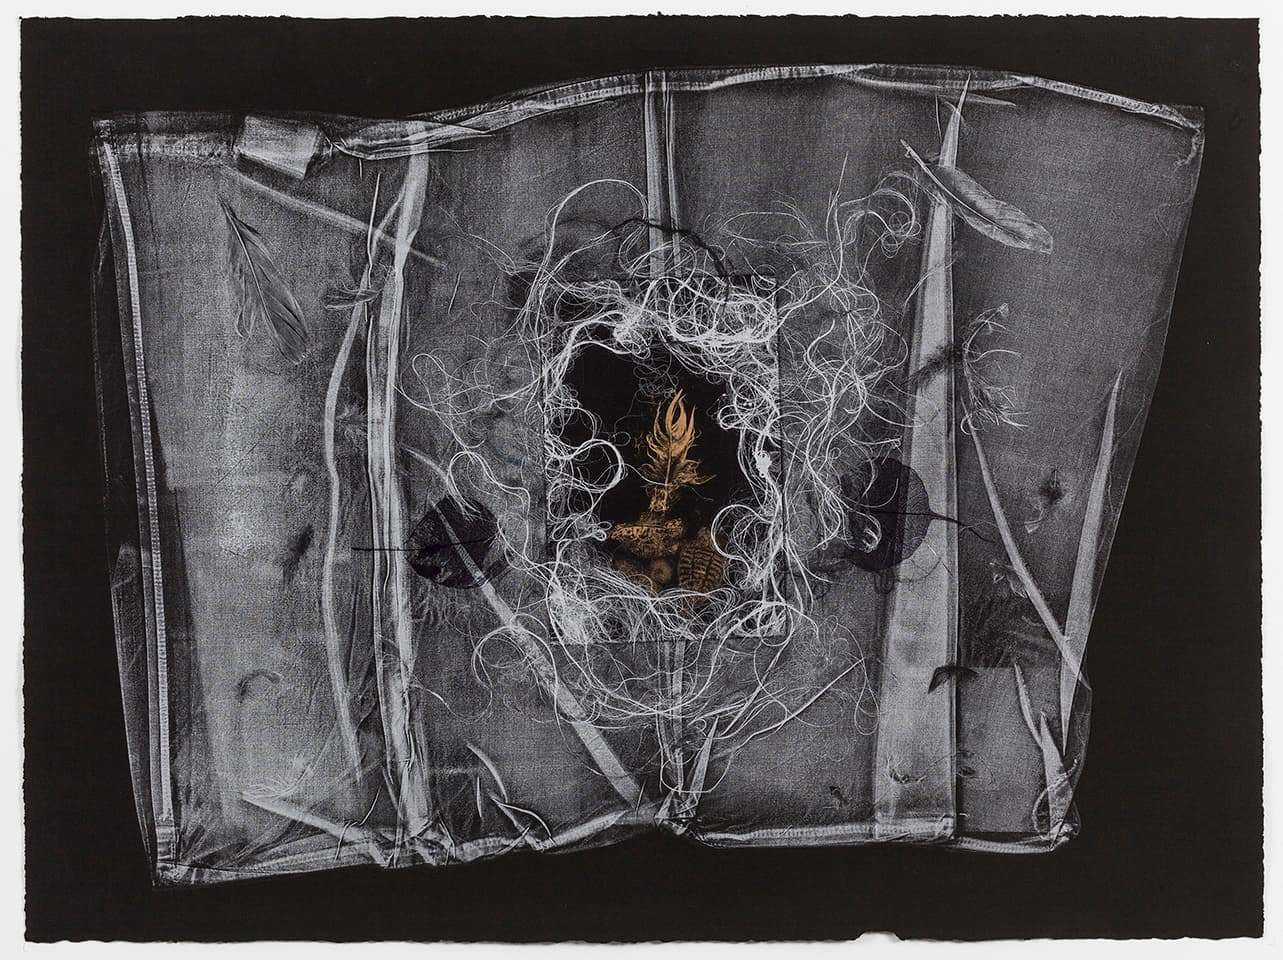 <strong>The Dark Self 11</strong>, Susan Aldworth, monoprint, 56 x 76 cms, 2017. Photograph by Peter Abrahams.